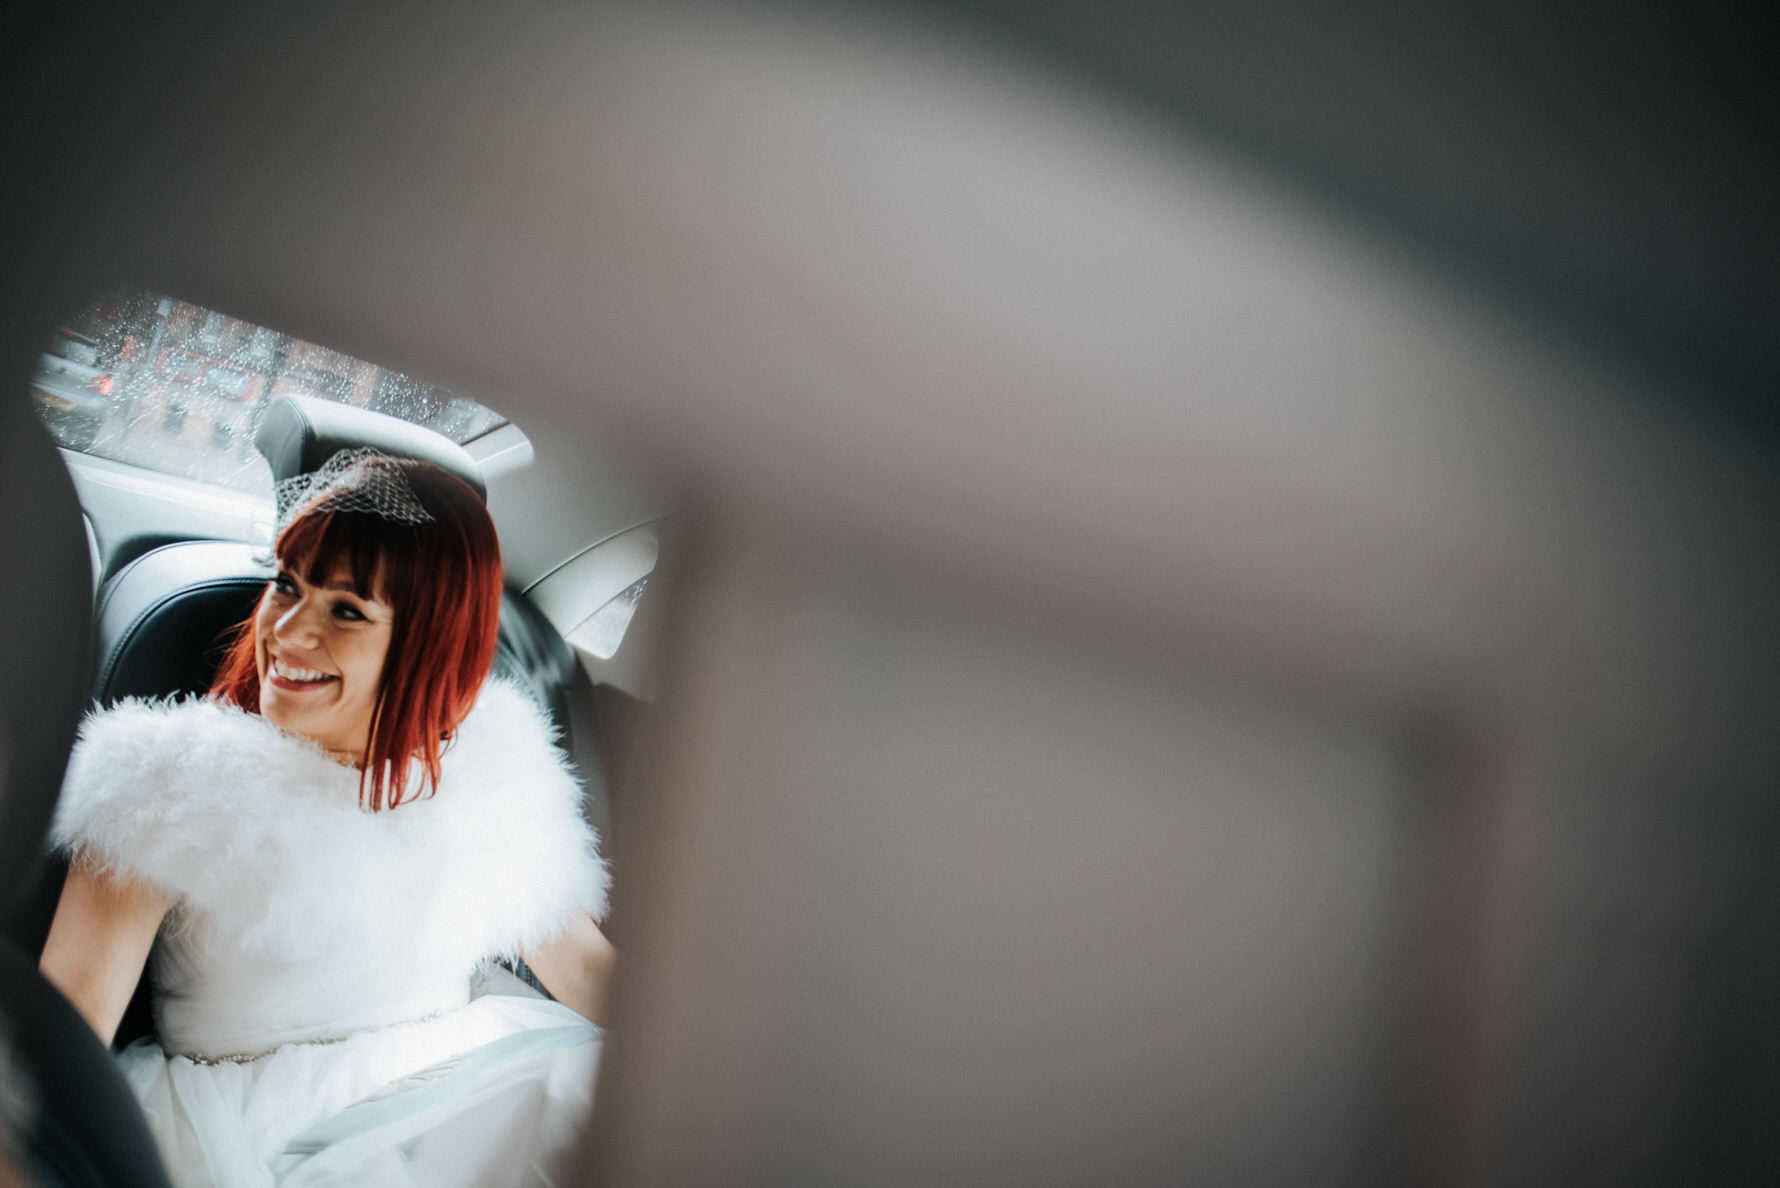 Cheshire Documentary wedding photography by Award Winning Louise Jacob, prices from £1500